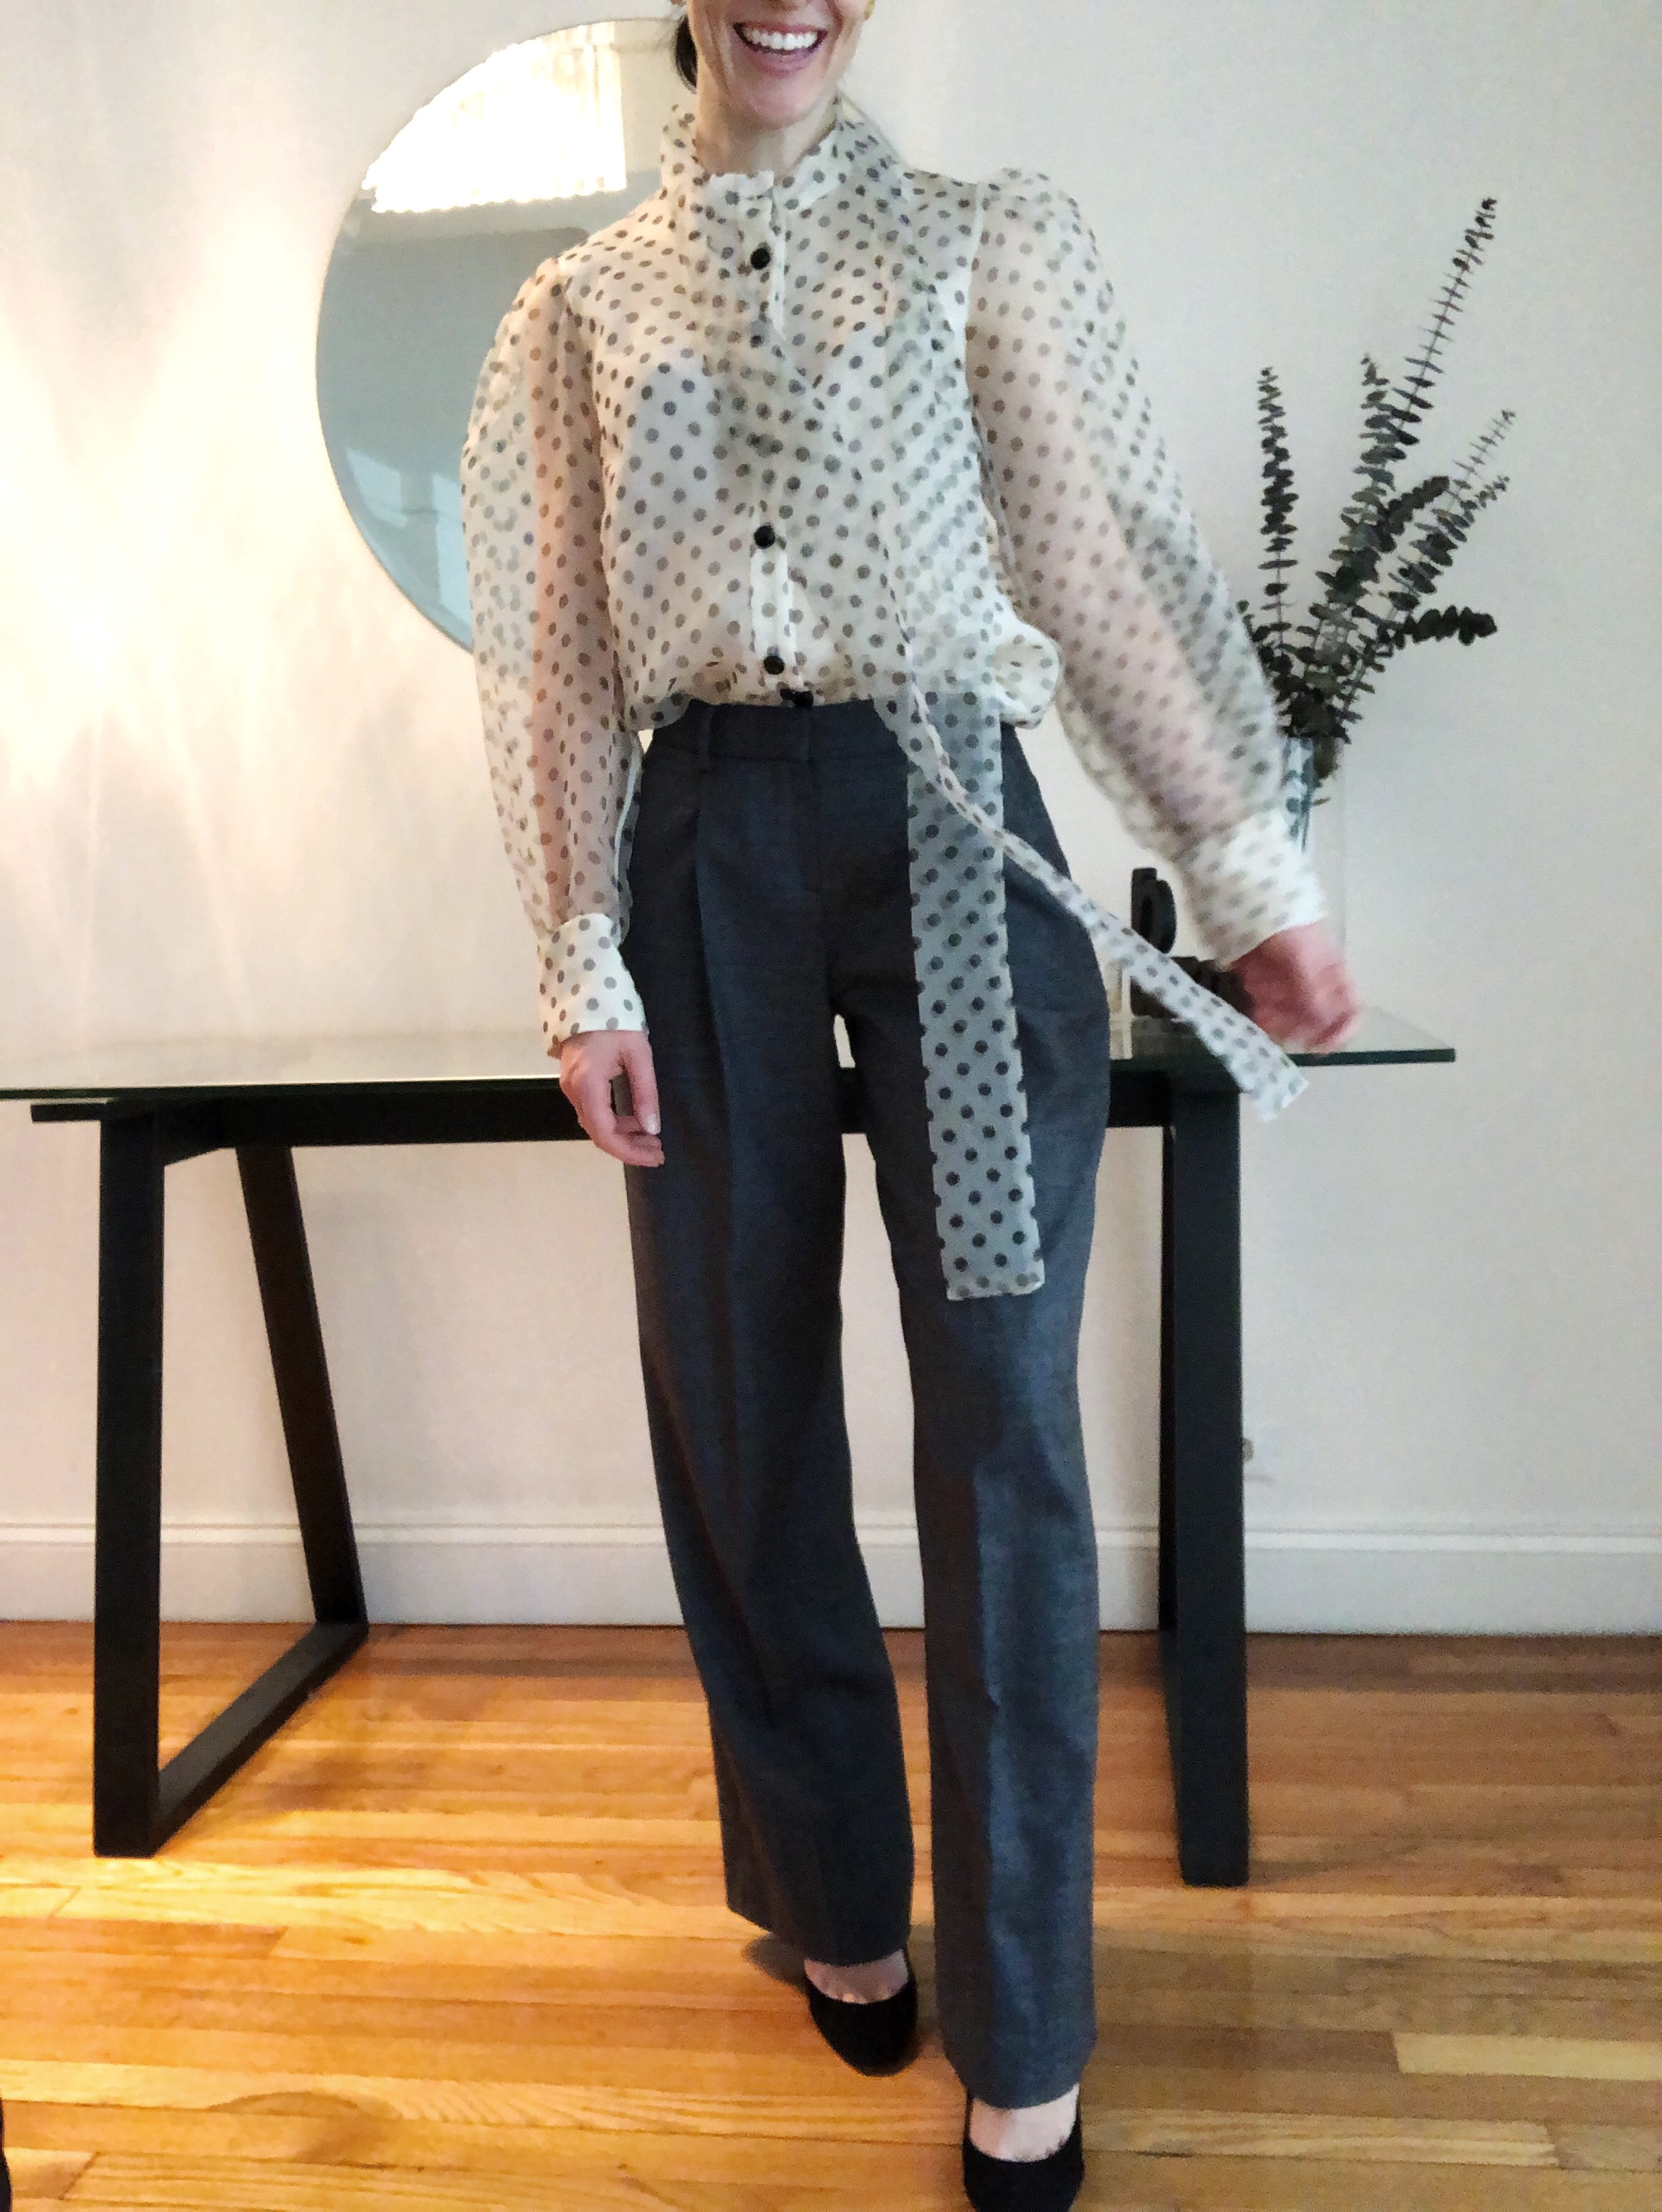 Poet Blouse, puff sleeve, spot shirt, polka dots, corporate work wear fashion office.jpeg